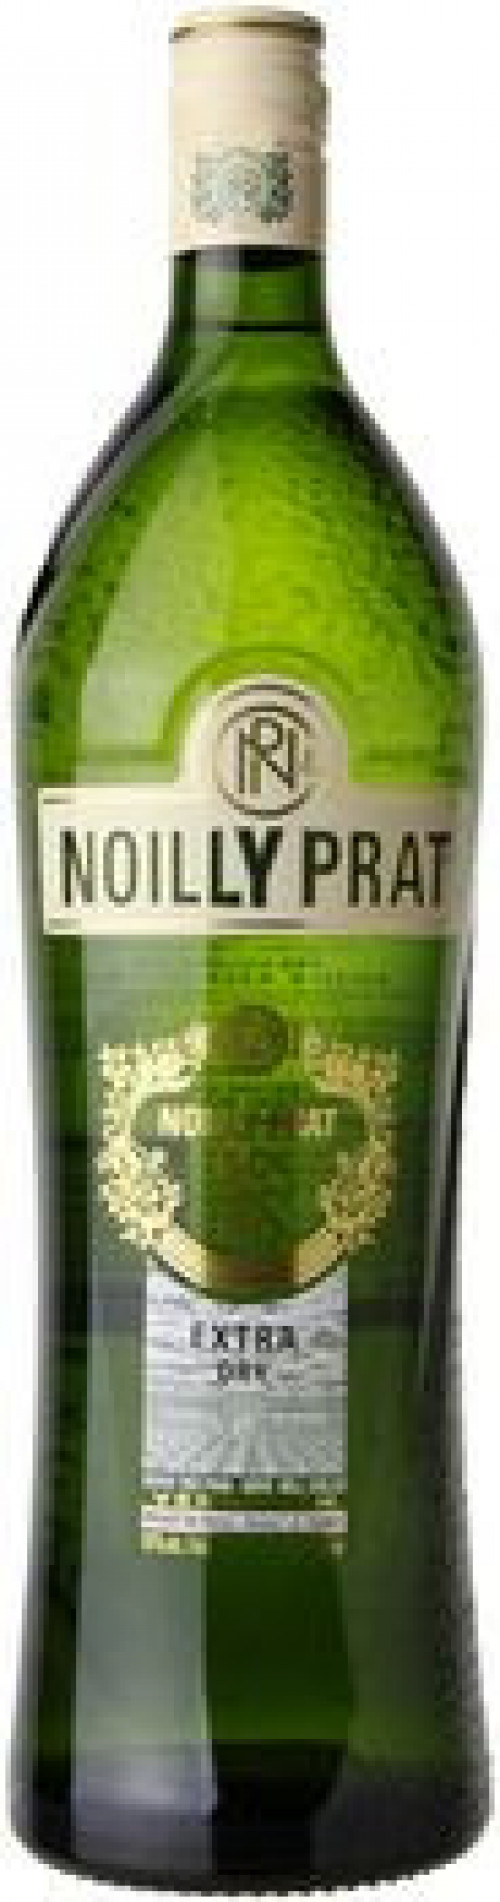 Noilly Prat Extra Dry Vermouth 1L